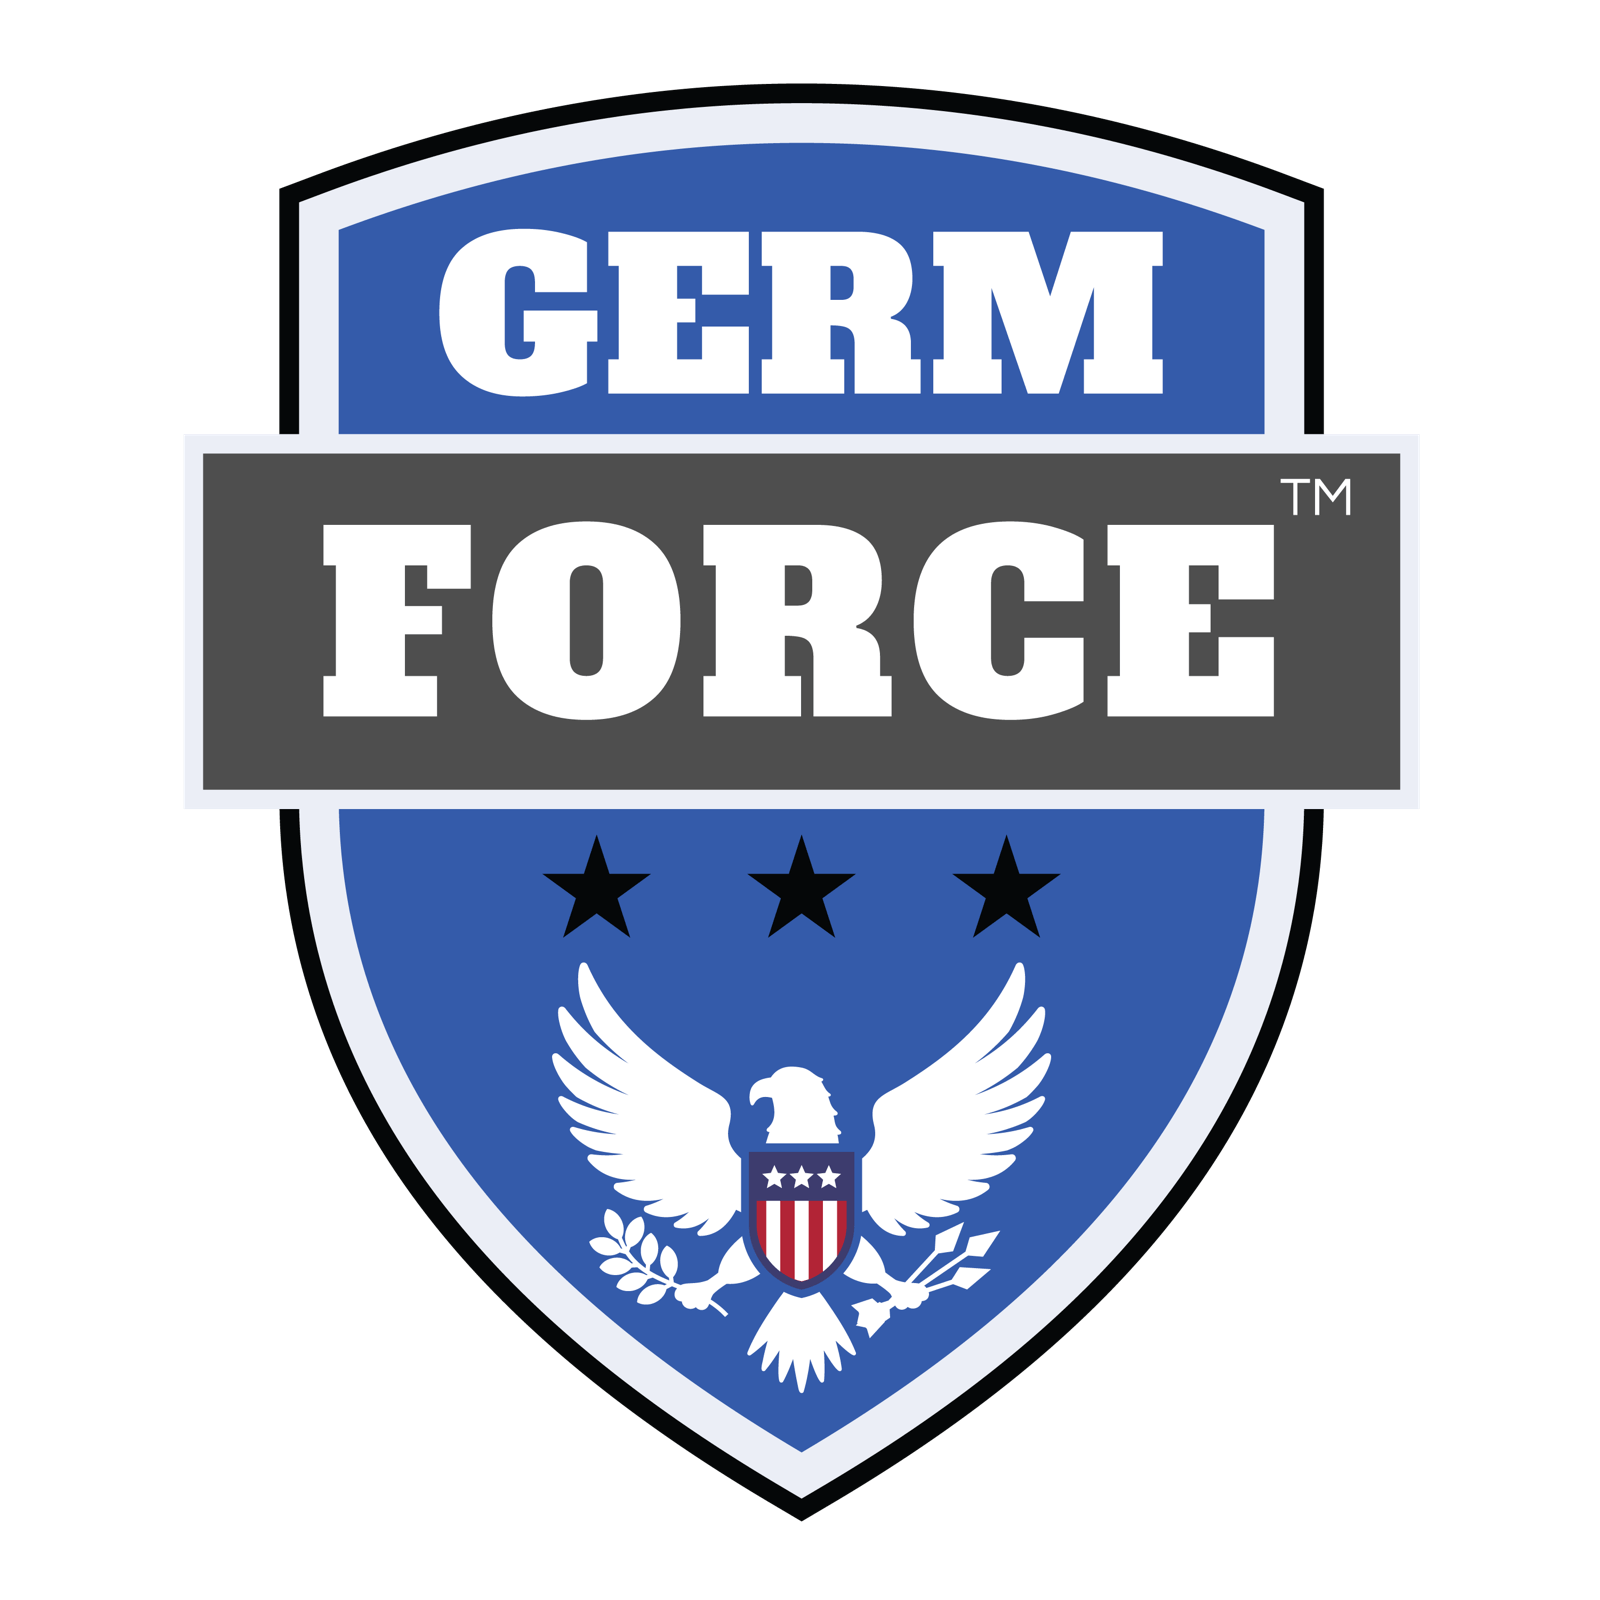 The Germ Force